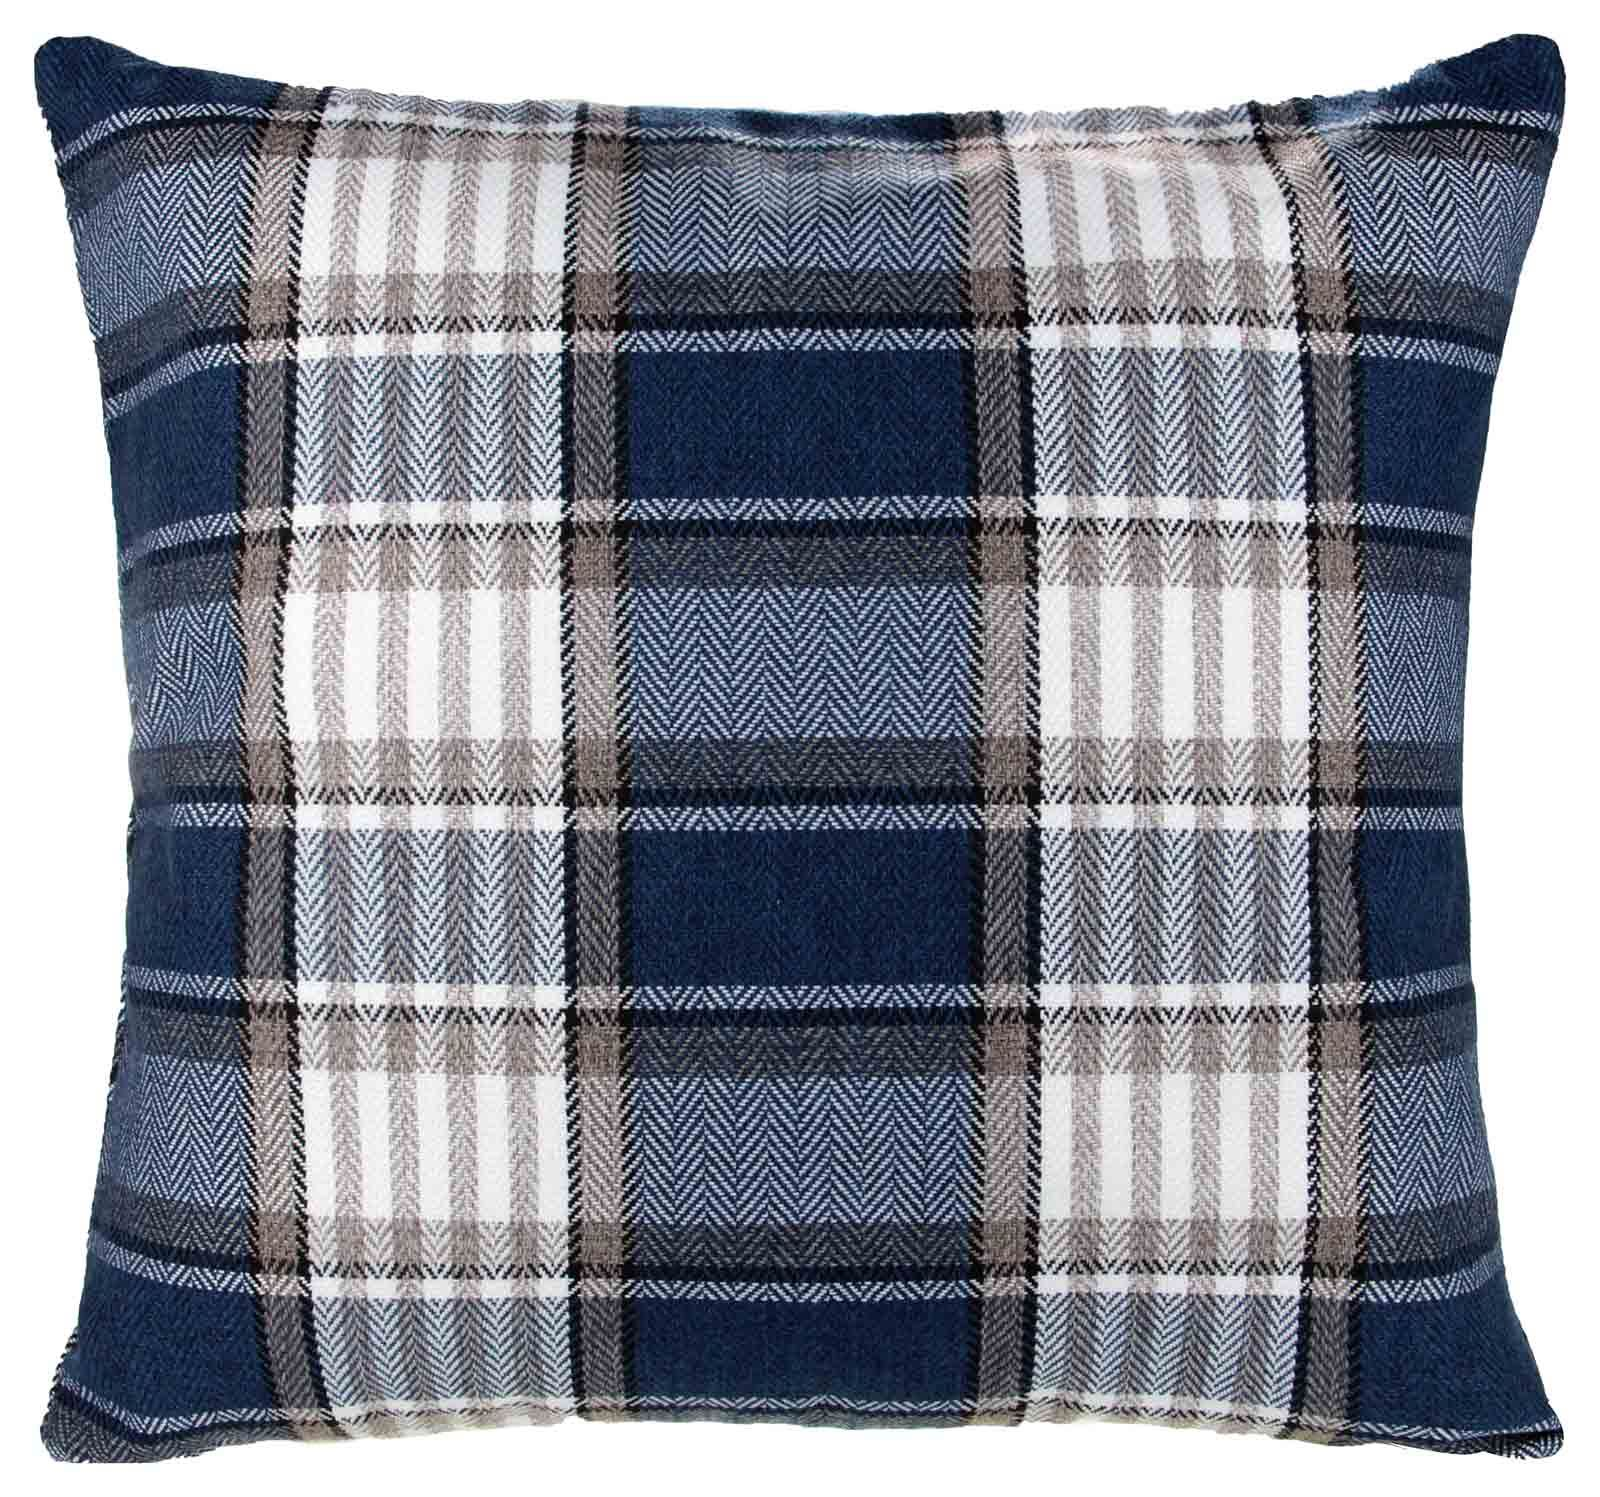 The adorable Plaid Pooch Square Throw Pillow from Mina Victory is the perfect finishing touch to any room. It features a small happy dog, in a plaid design, perched on top of a welcome bag. This cute pillow will look great on any sofa or chair.